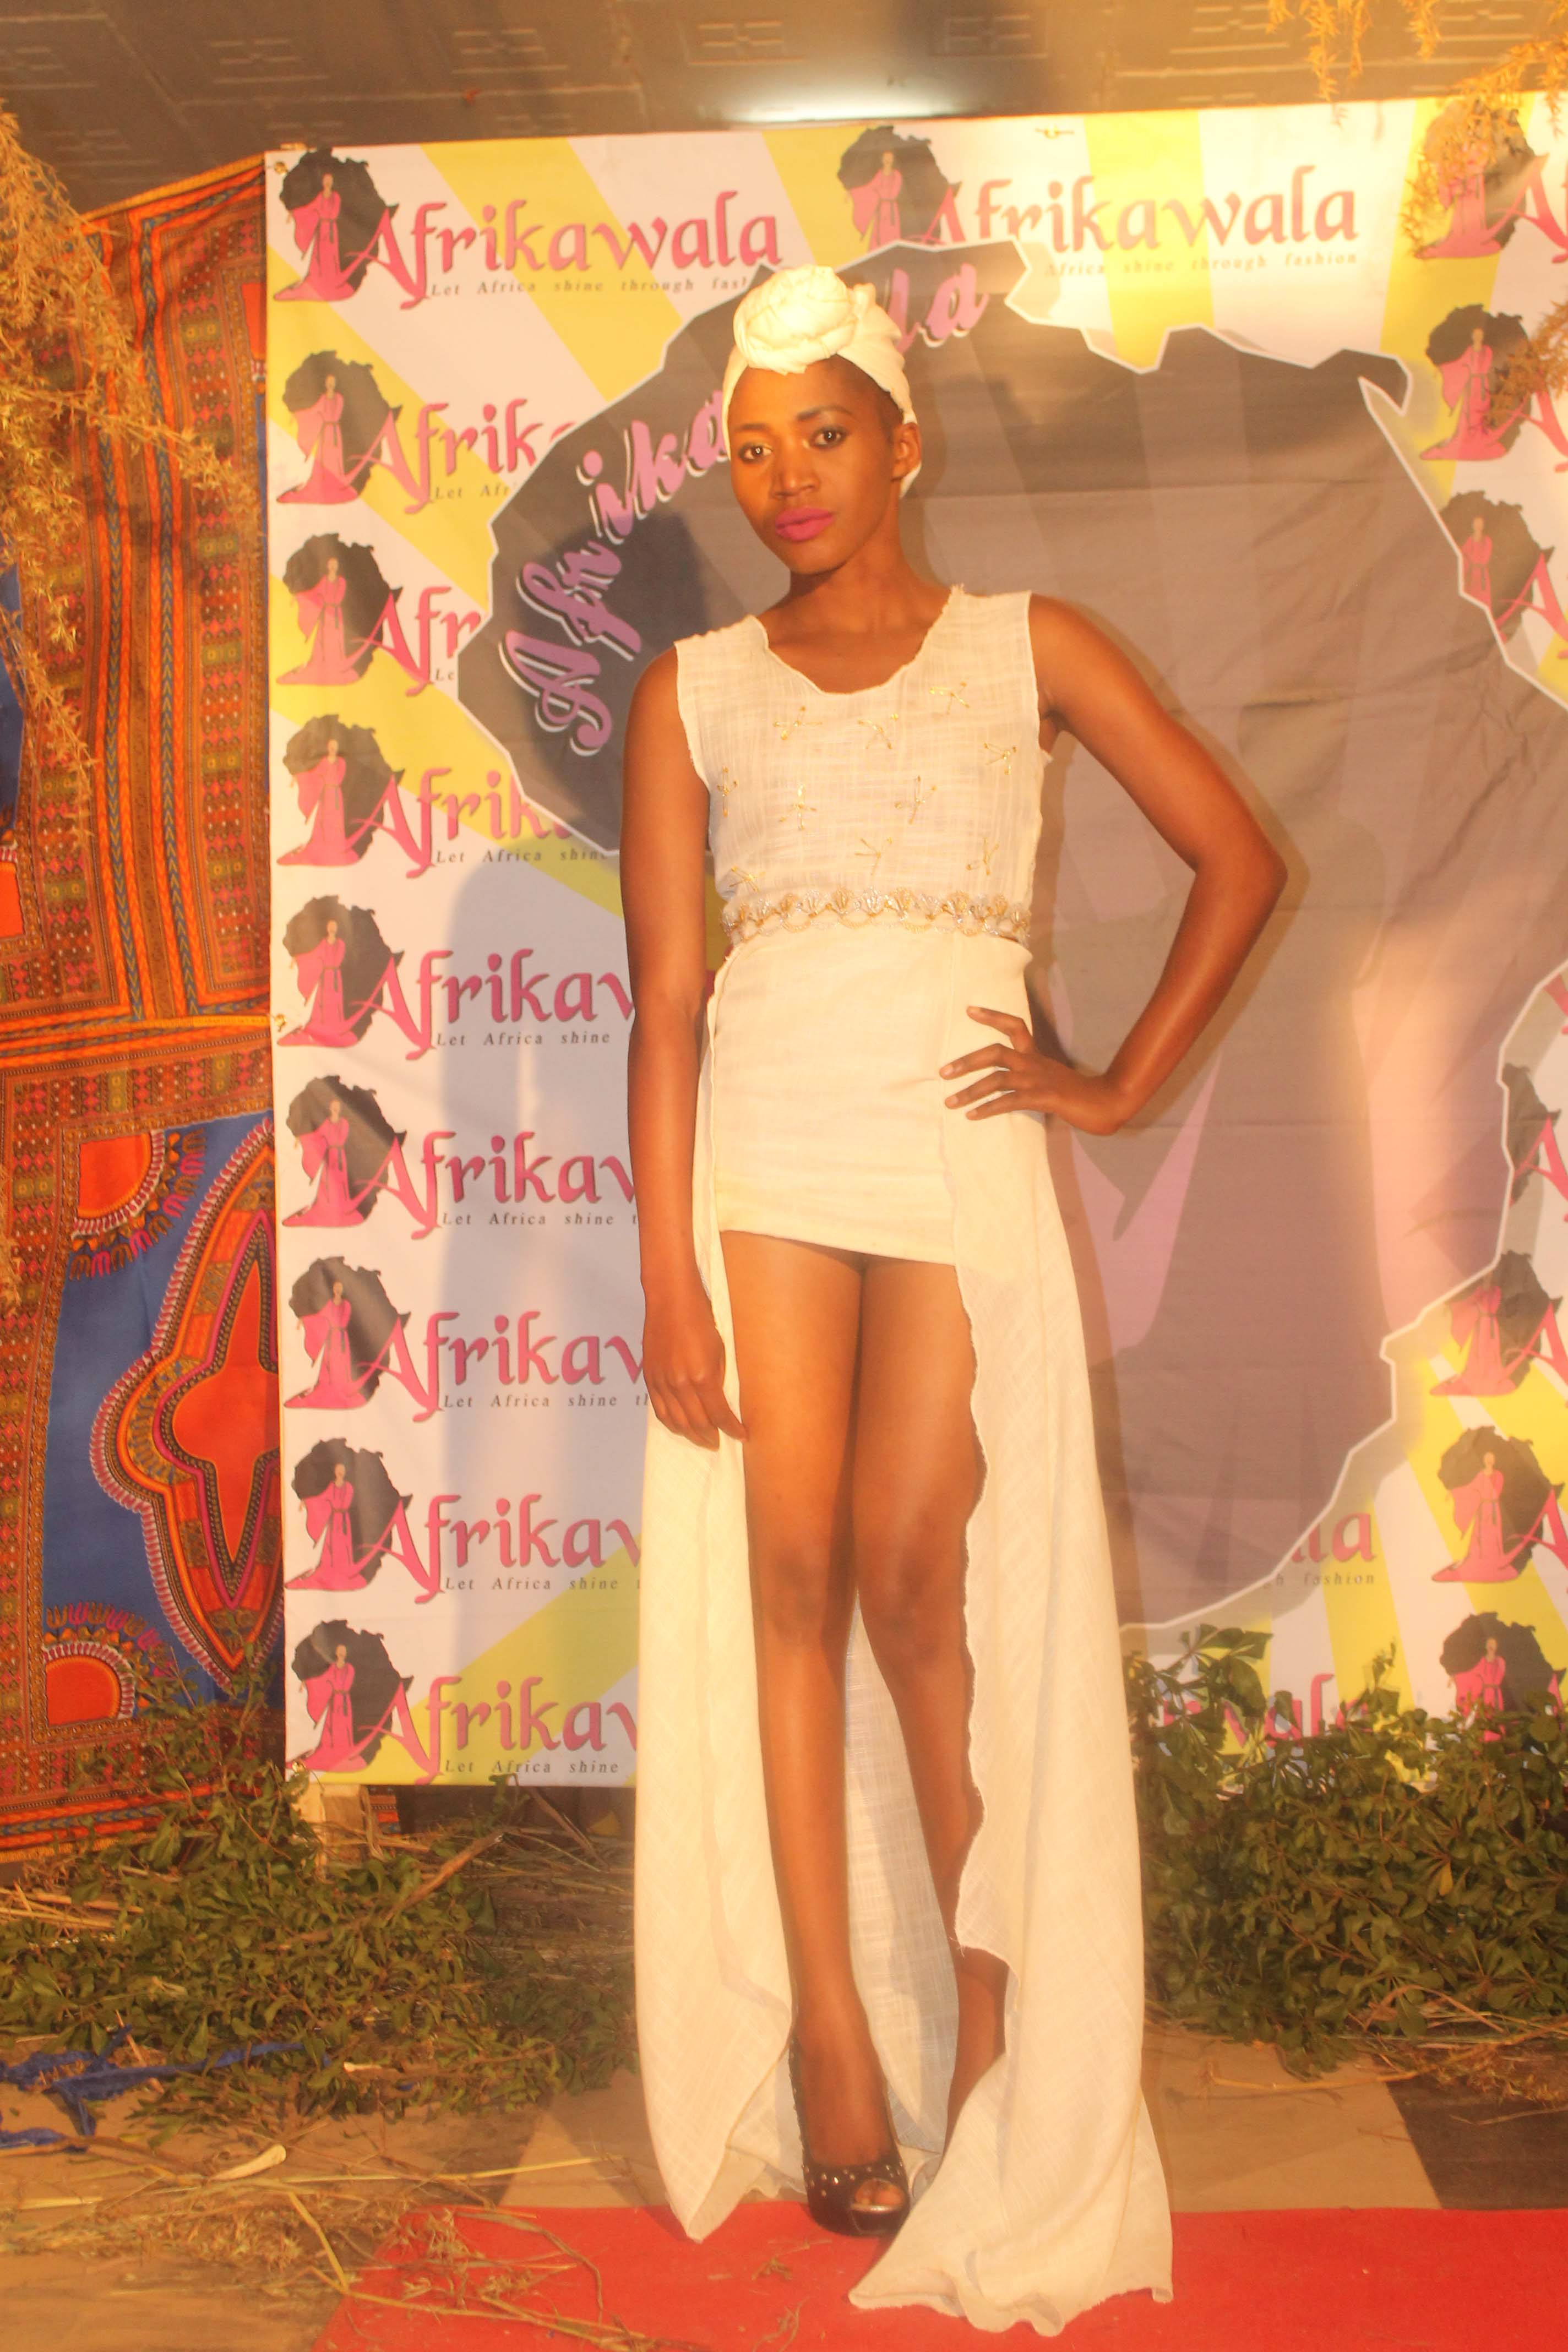 Model Siphiwe Lumbiwe Nawakala at the Afrikawala Fashion Show